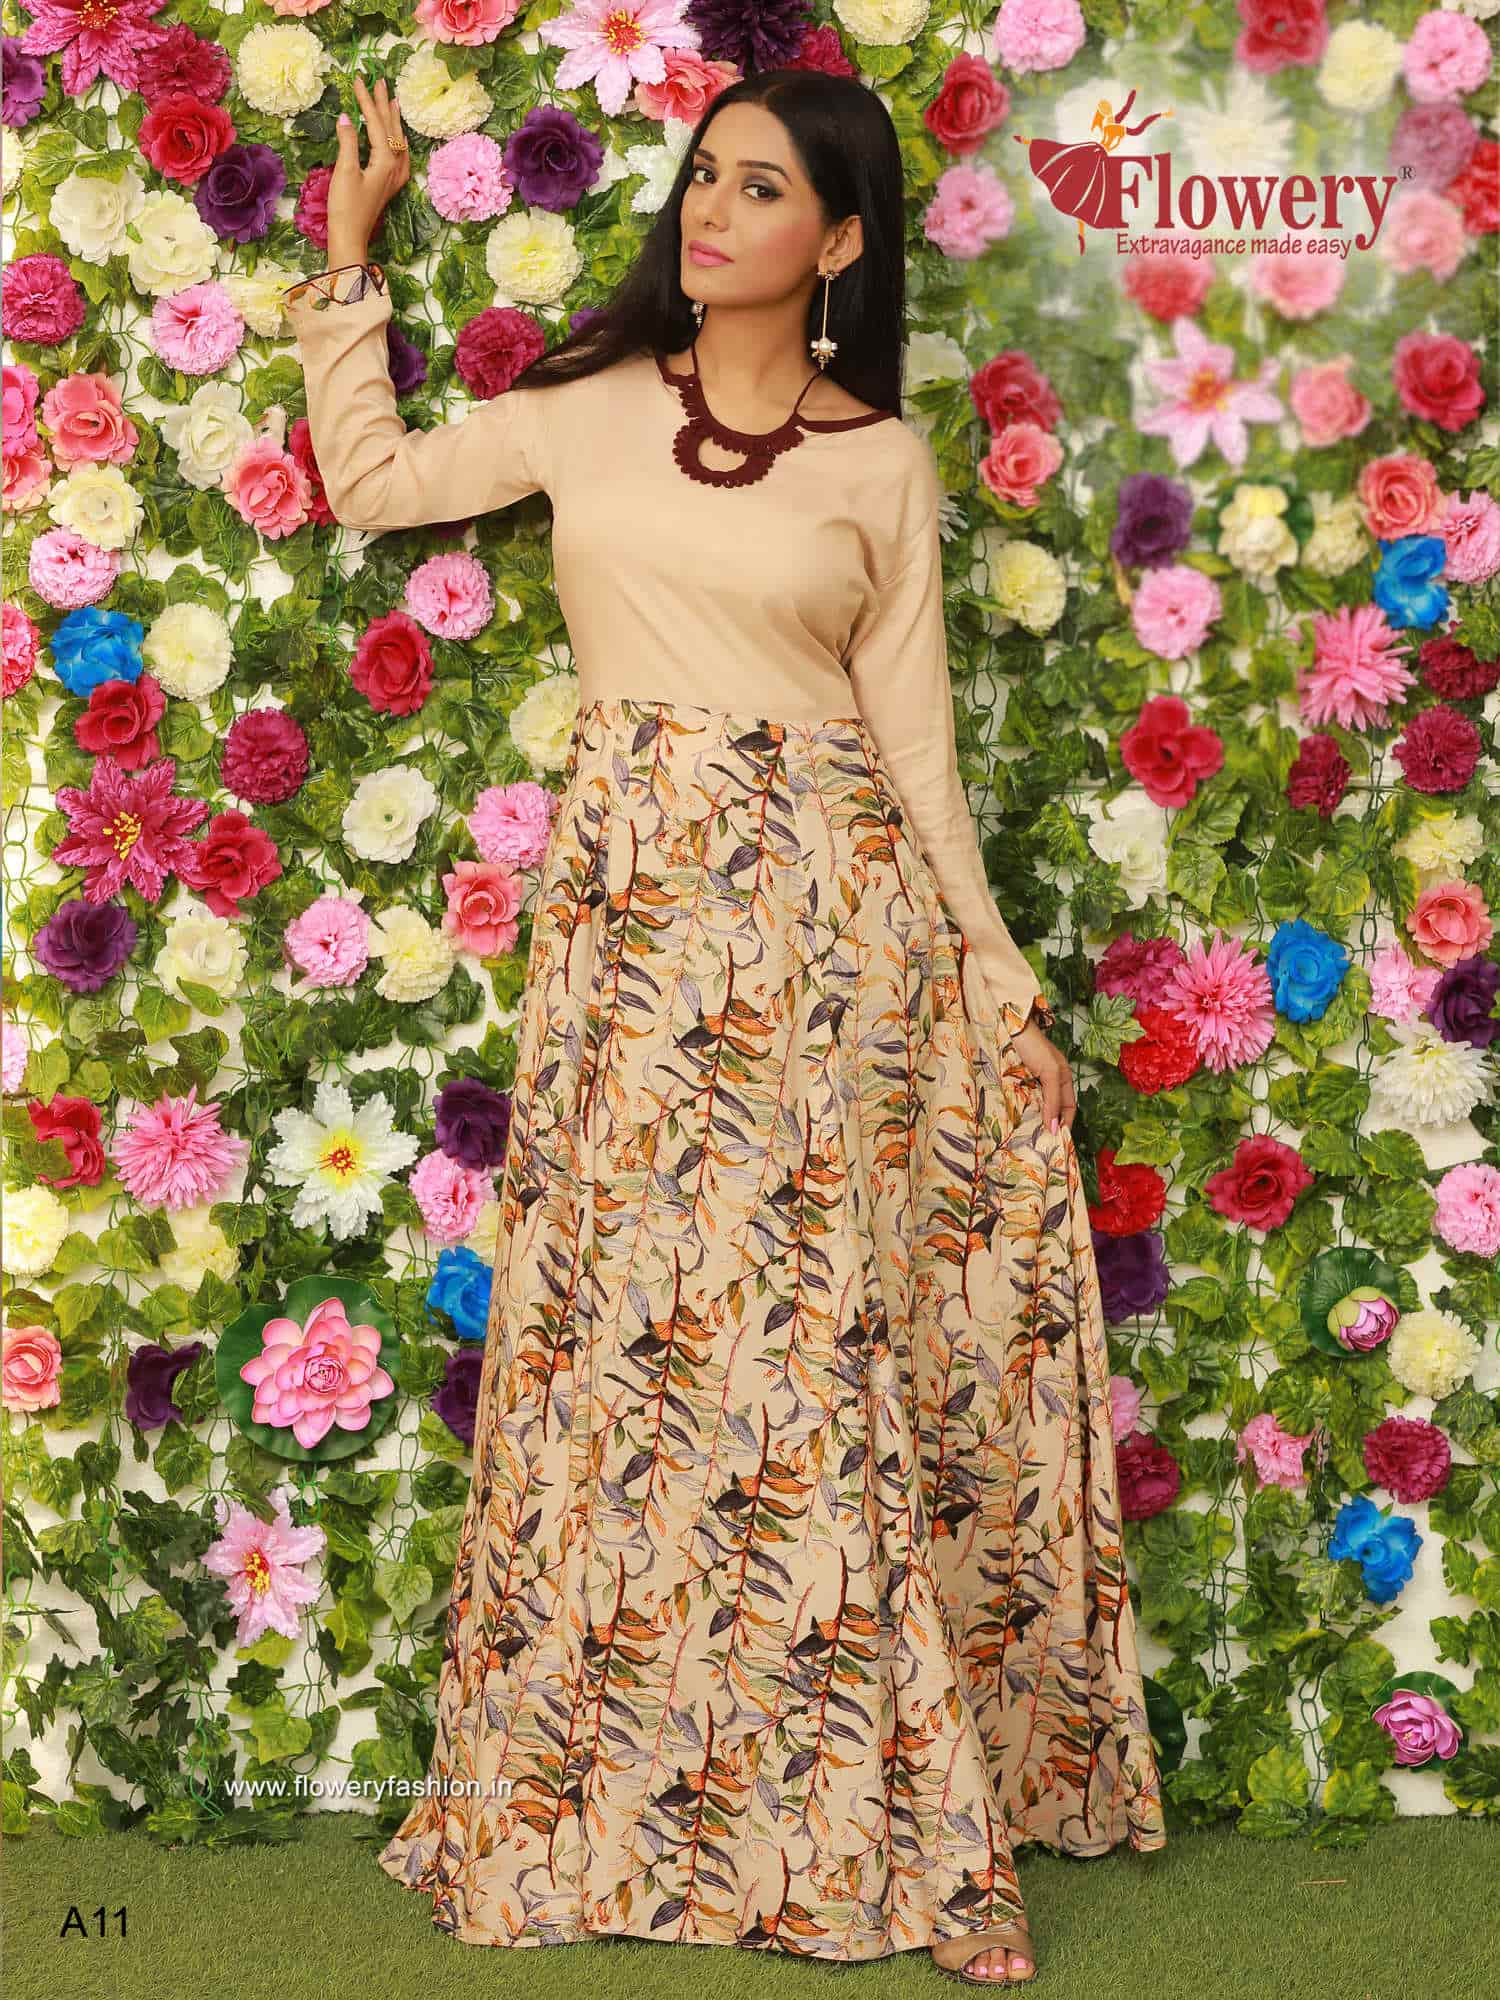 flowery fashion photos ring road surat pictures images gallery